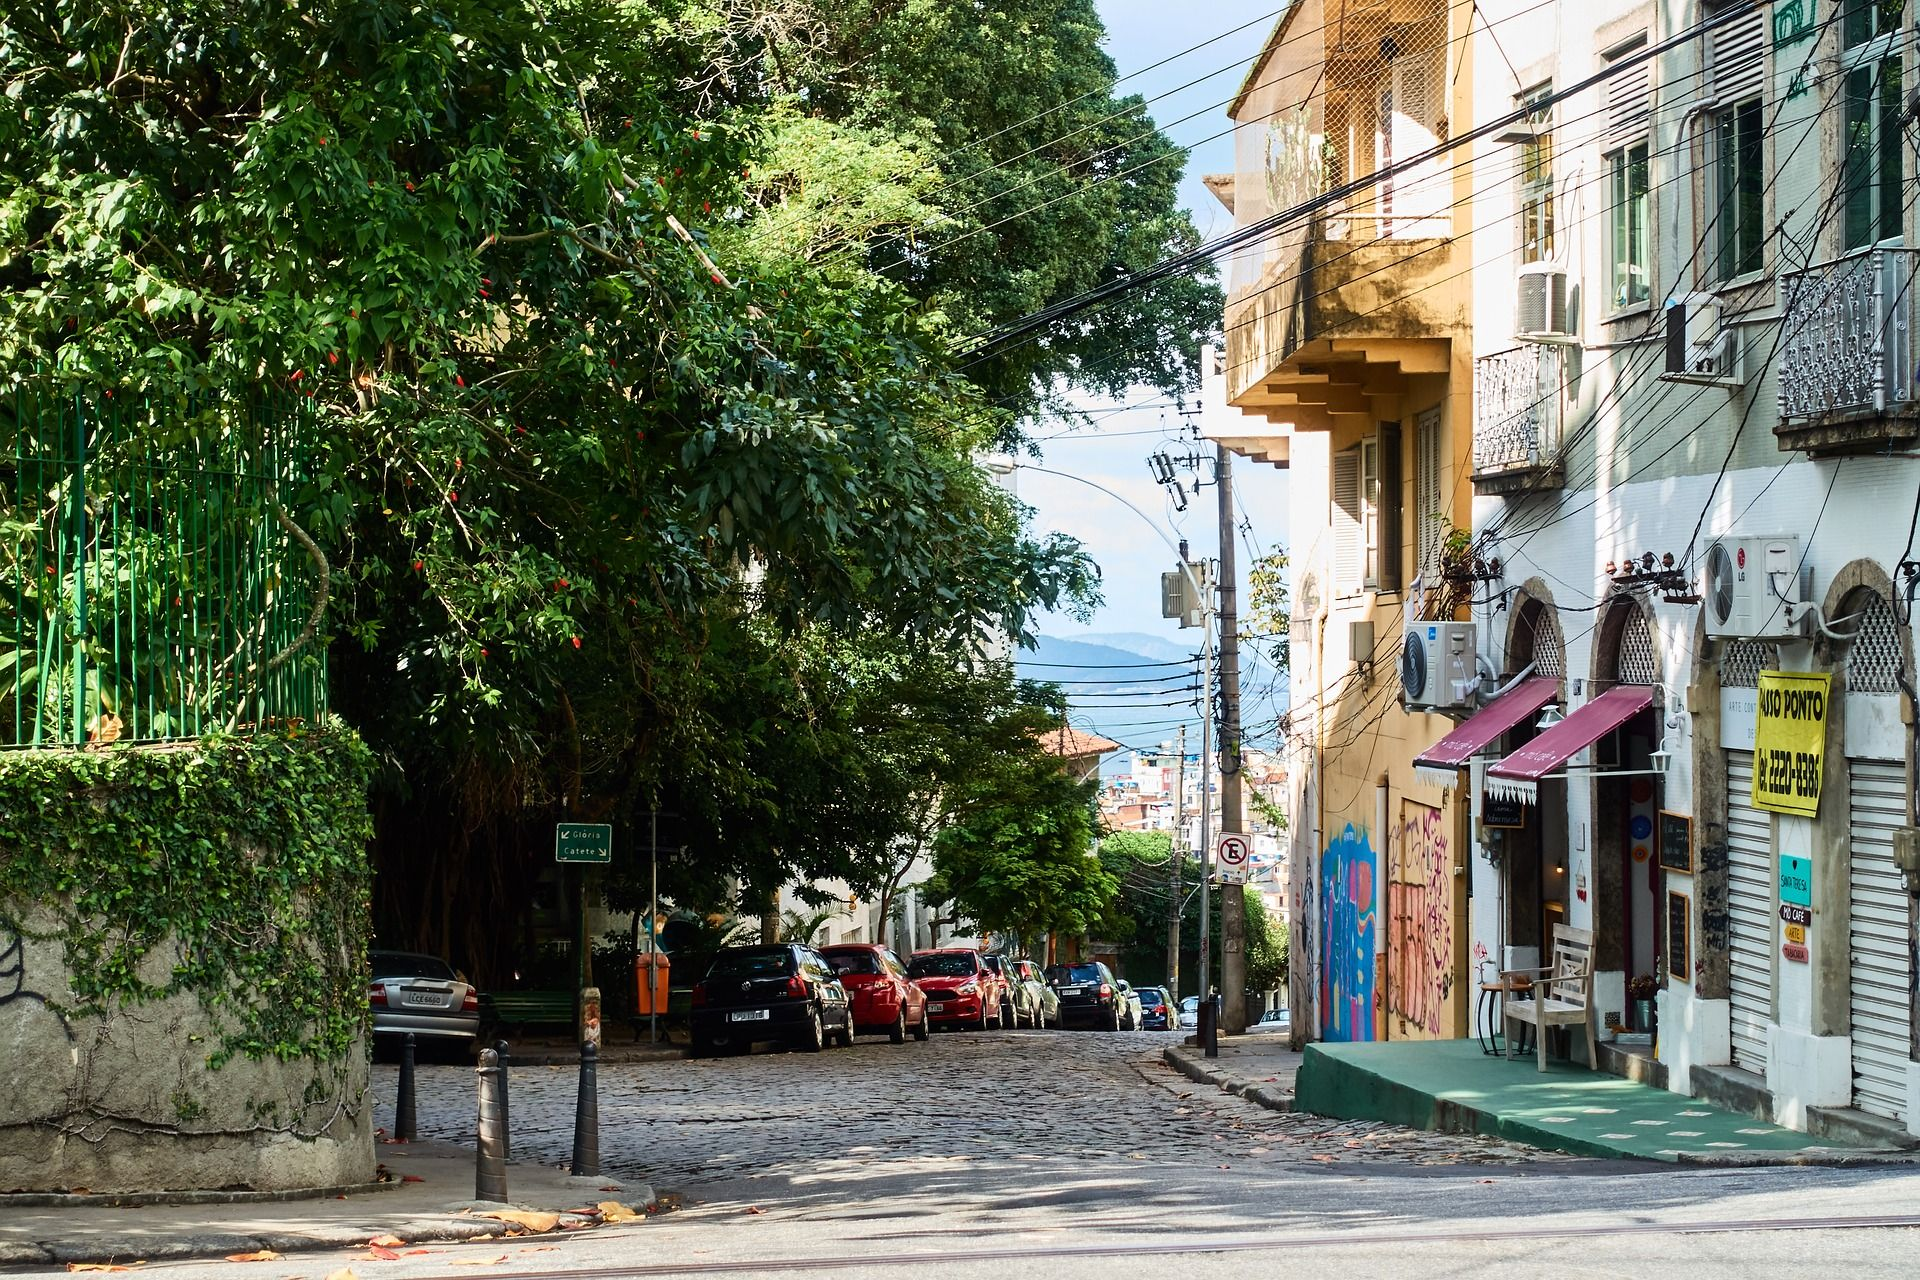 Photo of cars parked on a quiet street in Rio de Janeiro.